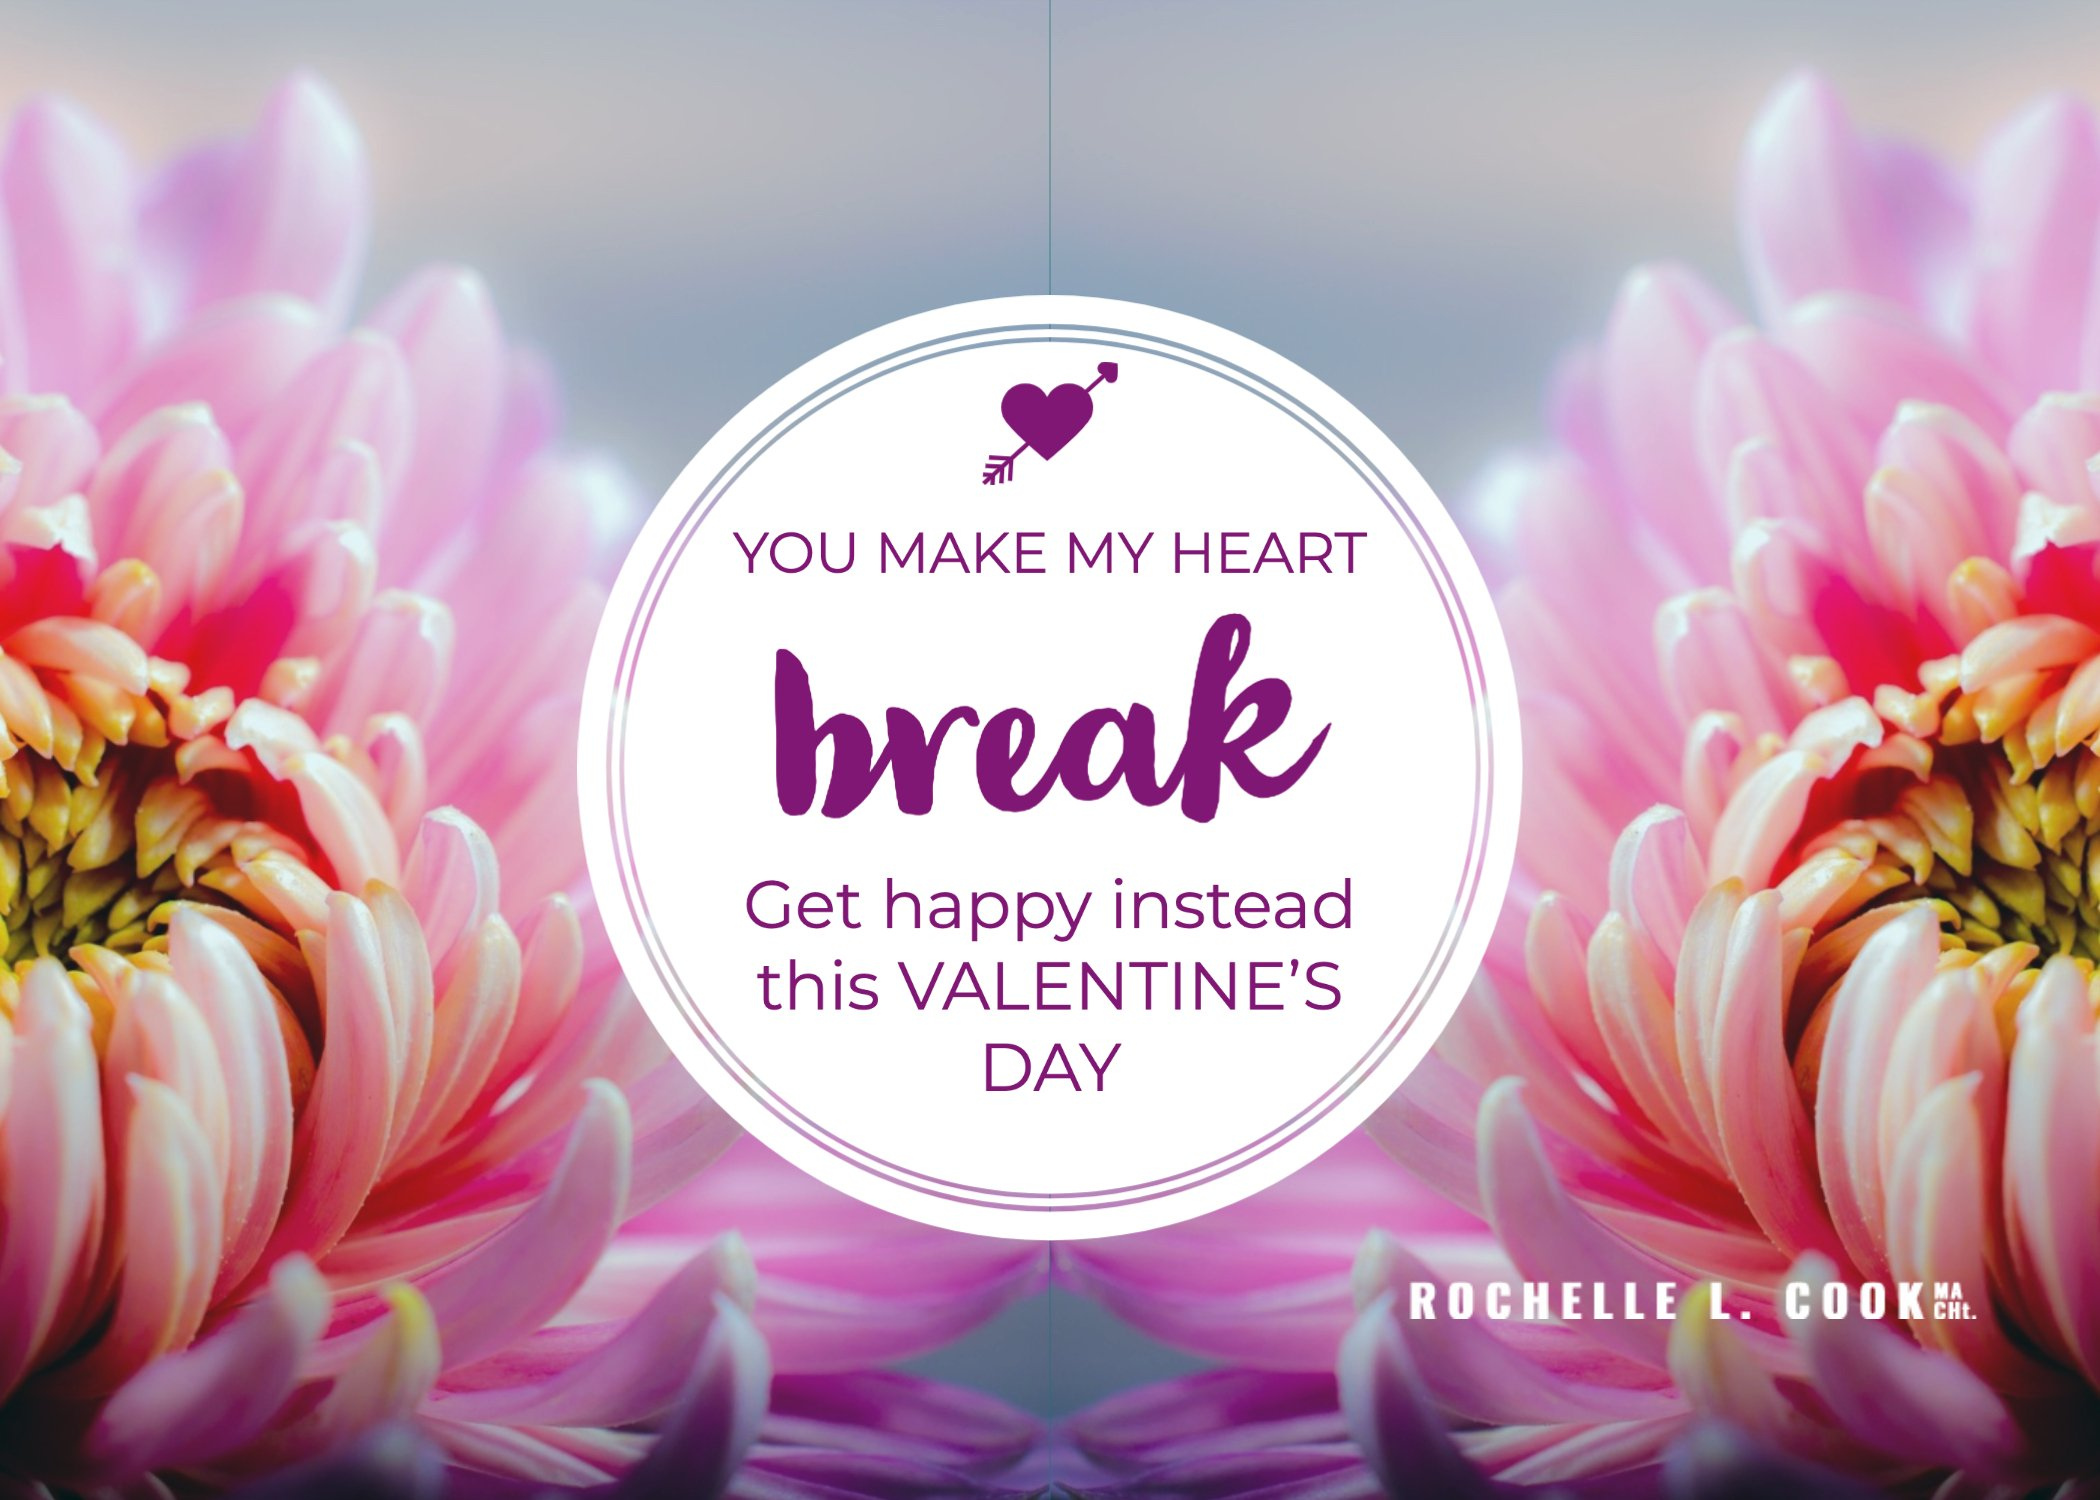 Life After A Breakup Or Divorce Exists It is finally time to embrace the joyful life you deserve? Download my 4-Steps to Taming Emotional Pain for FREE this #ValentinesDay and follow the steps. You'll instantly feel better, I promise!